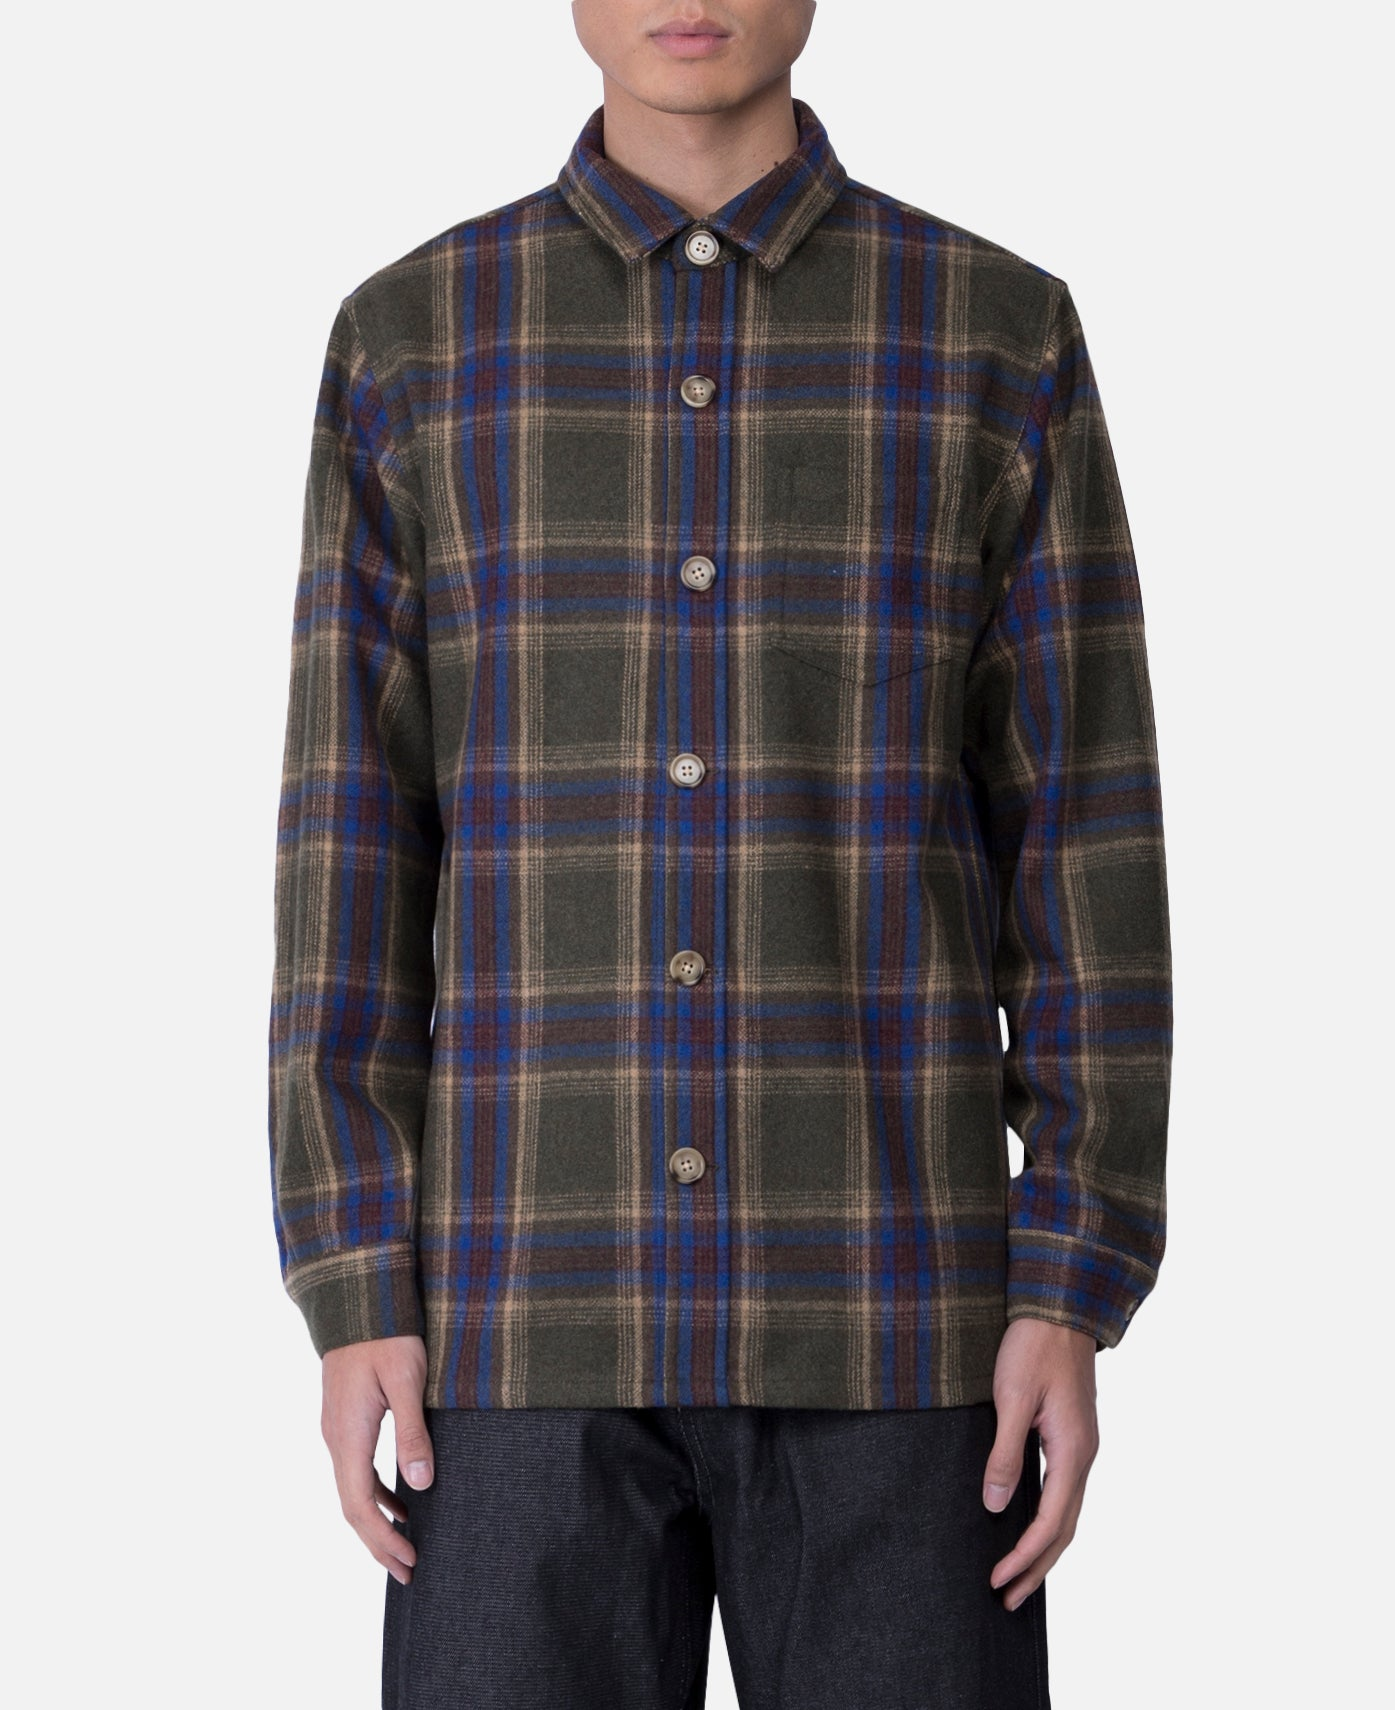 Flannel Shacket Jacket